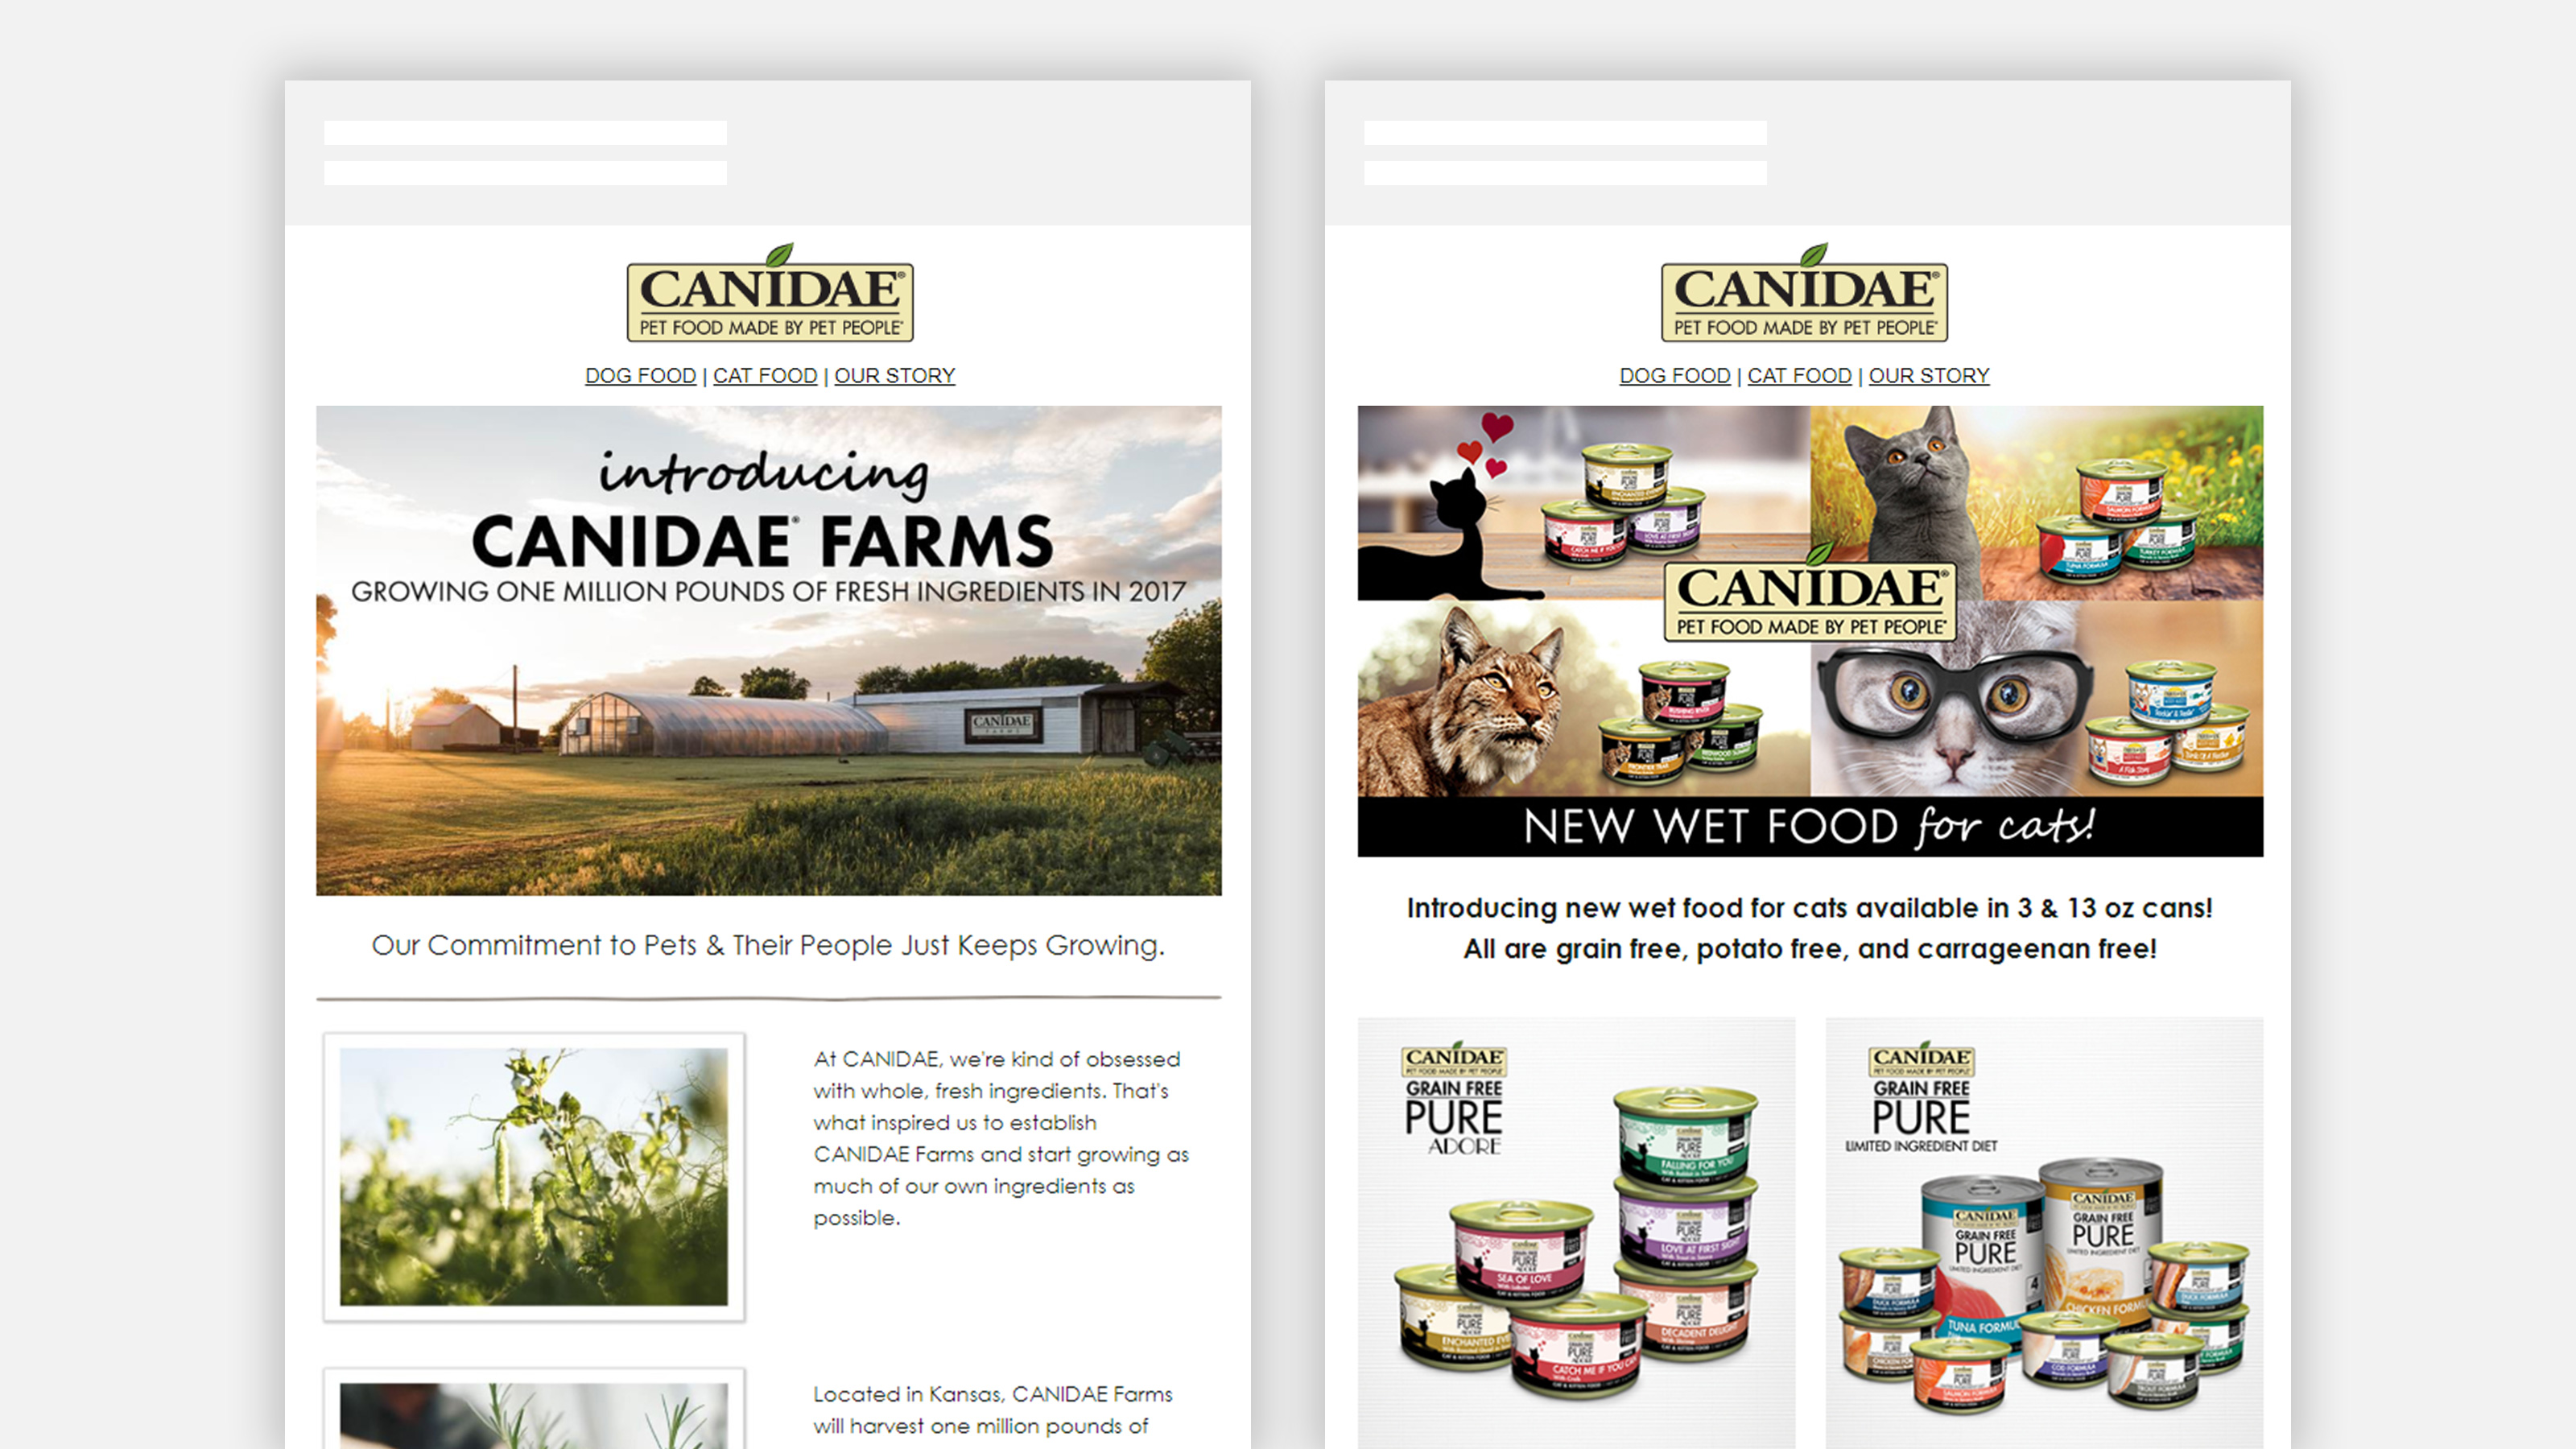 CANIDAE Pet Food newsletter emails